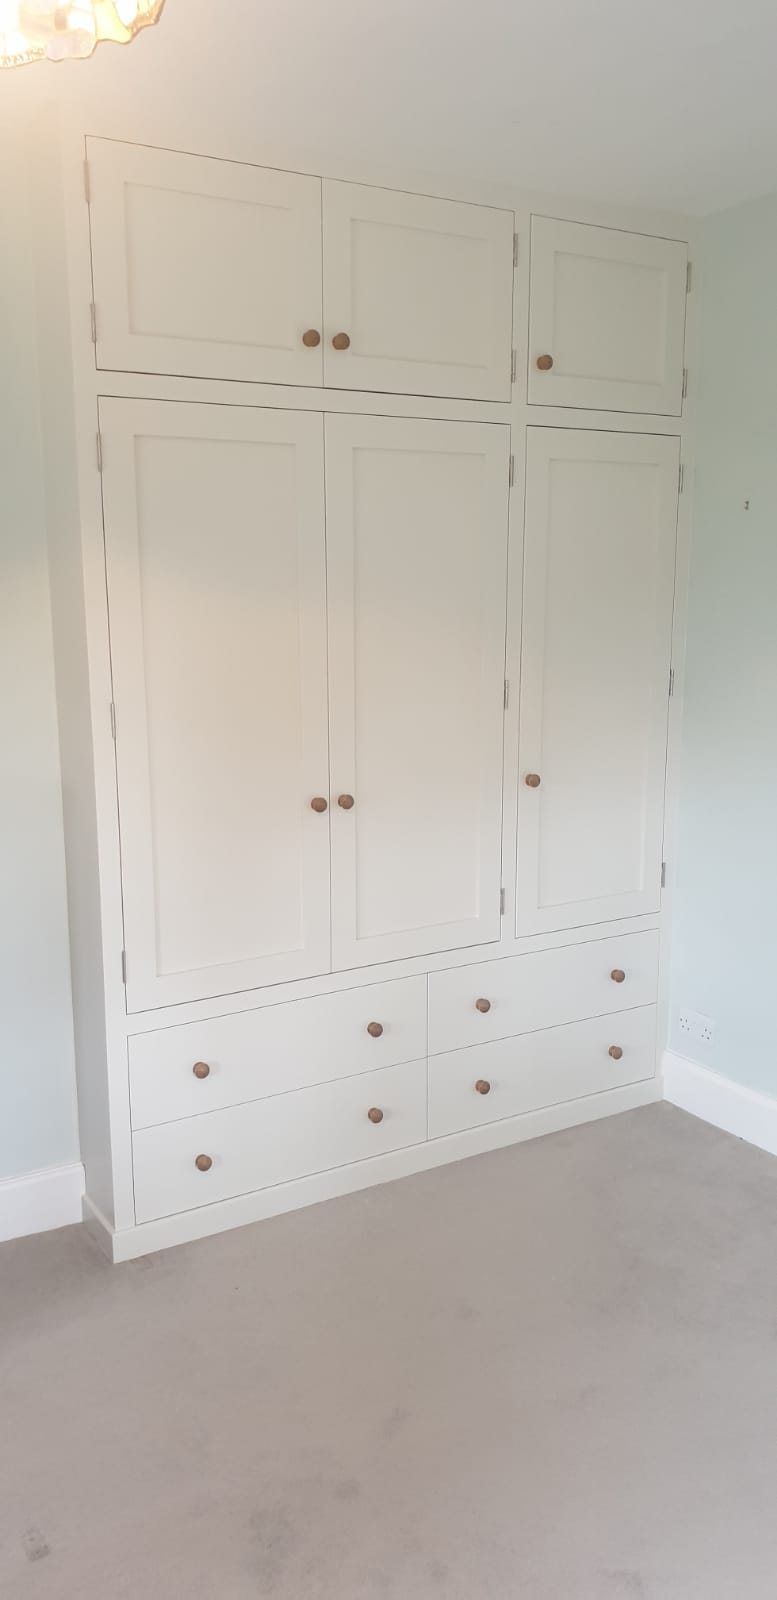 boars-hill-wardrobe-project-02